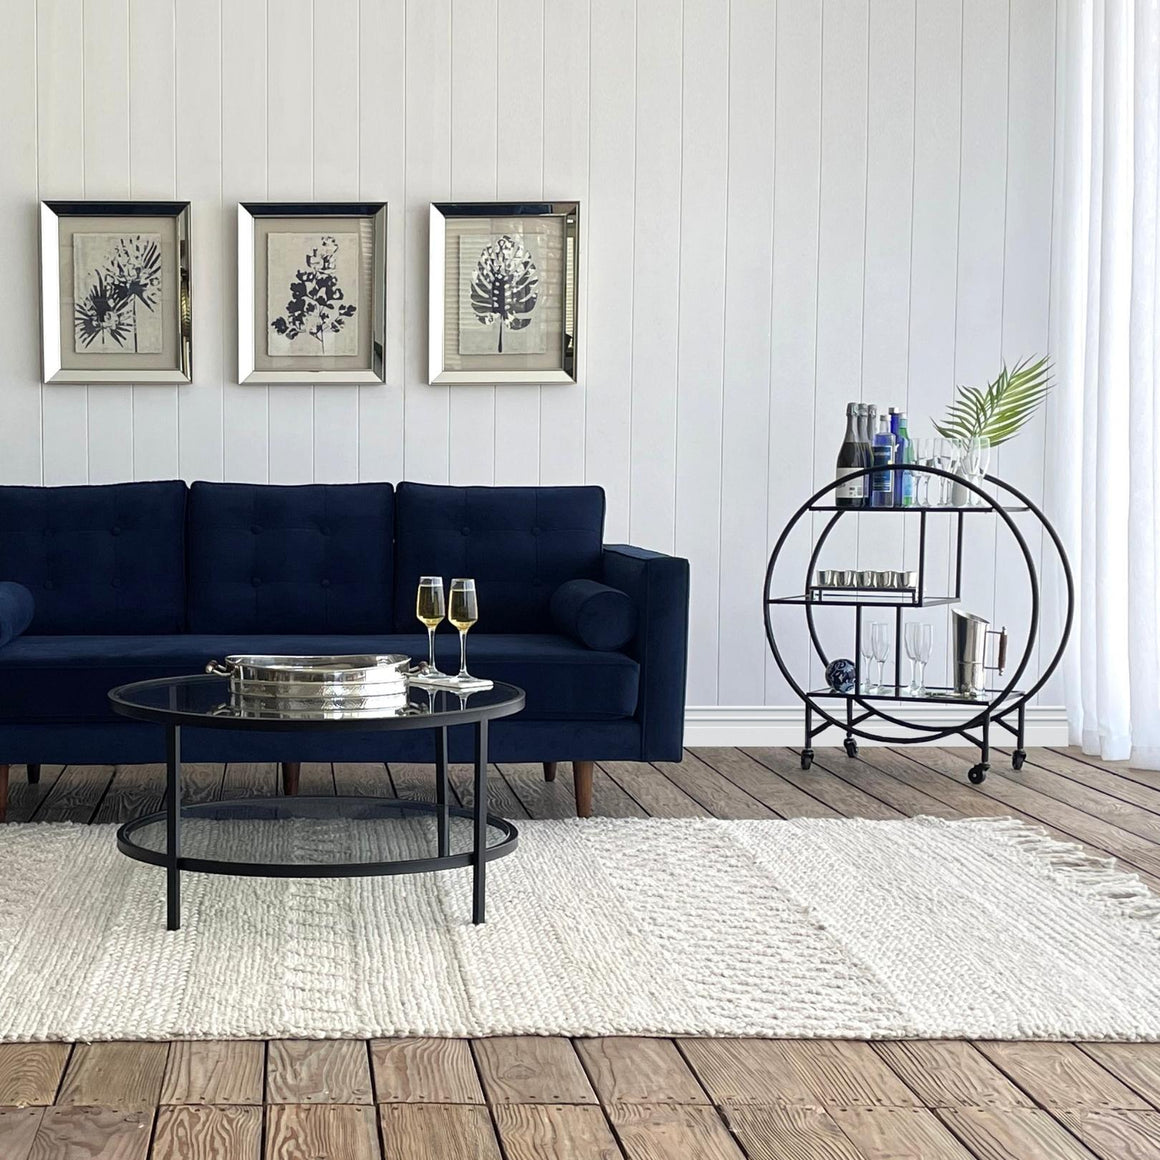 BLACK BAR TROLLEY MIRROR SHELVES